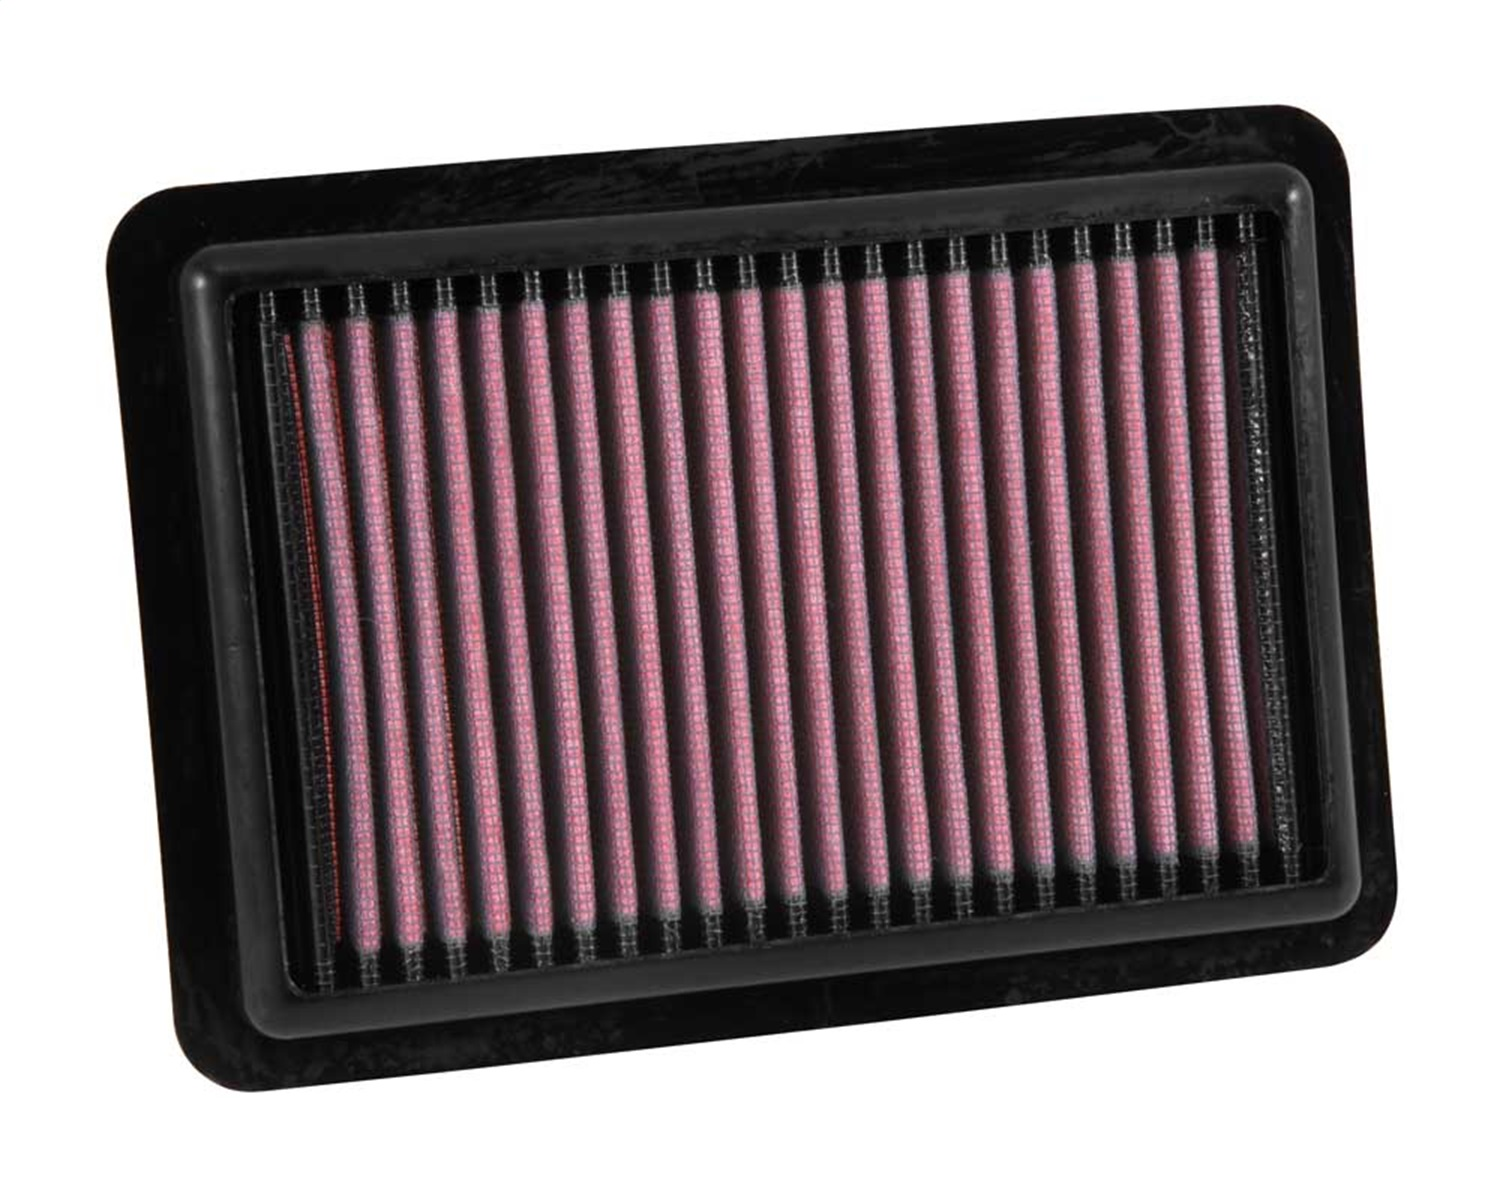 K&N Filters 33-5027 Air Filter Fits 15 Fit 33-5027